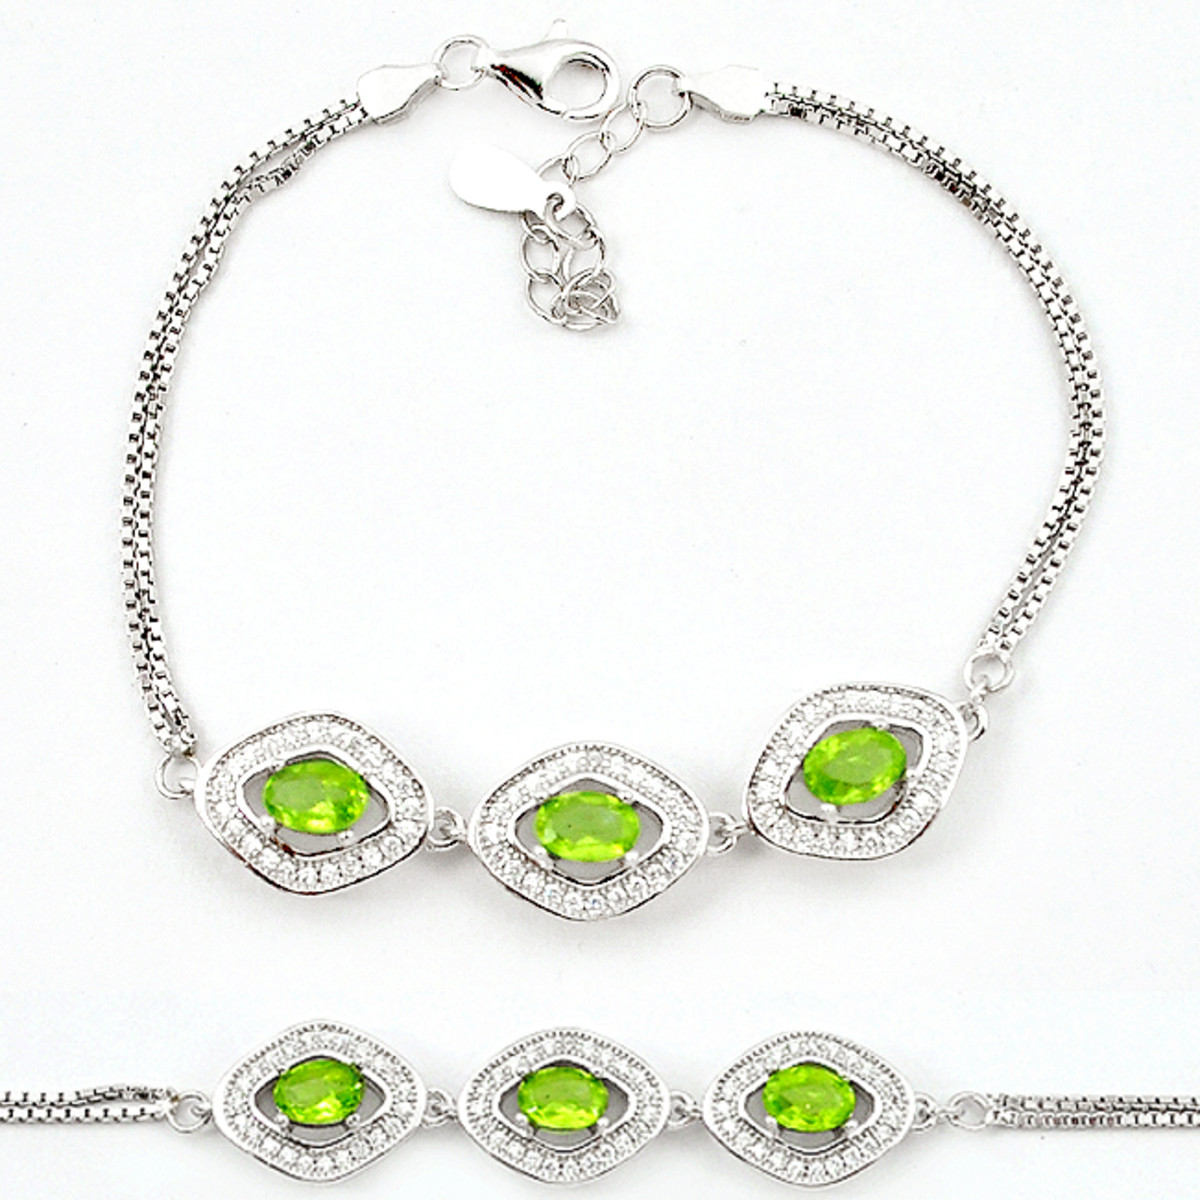 A 925 silver bracelet set with oval cut peridots and white stones, L. 16cm.